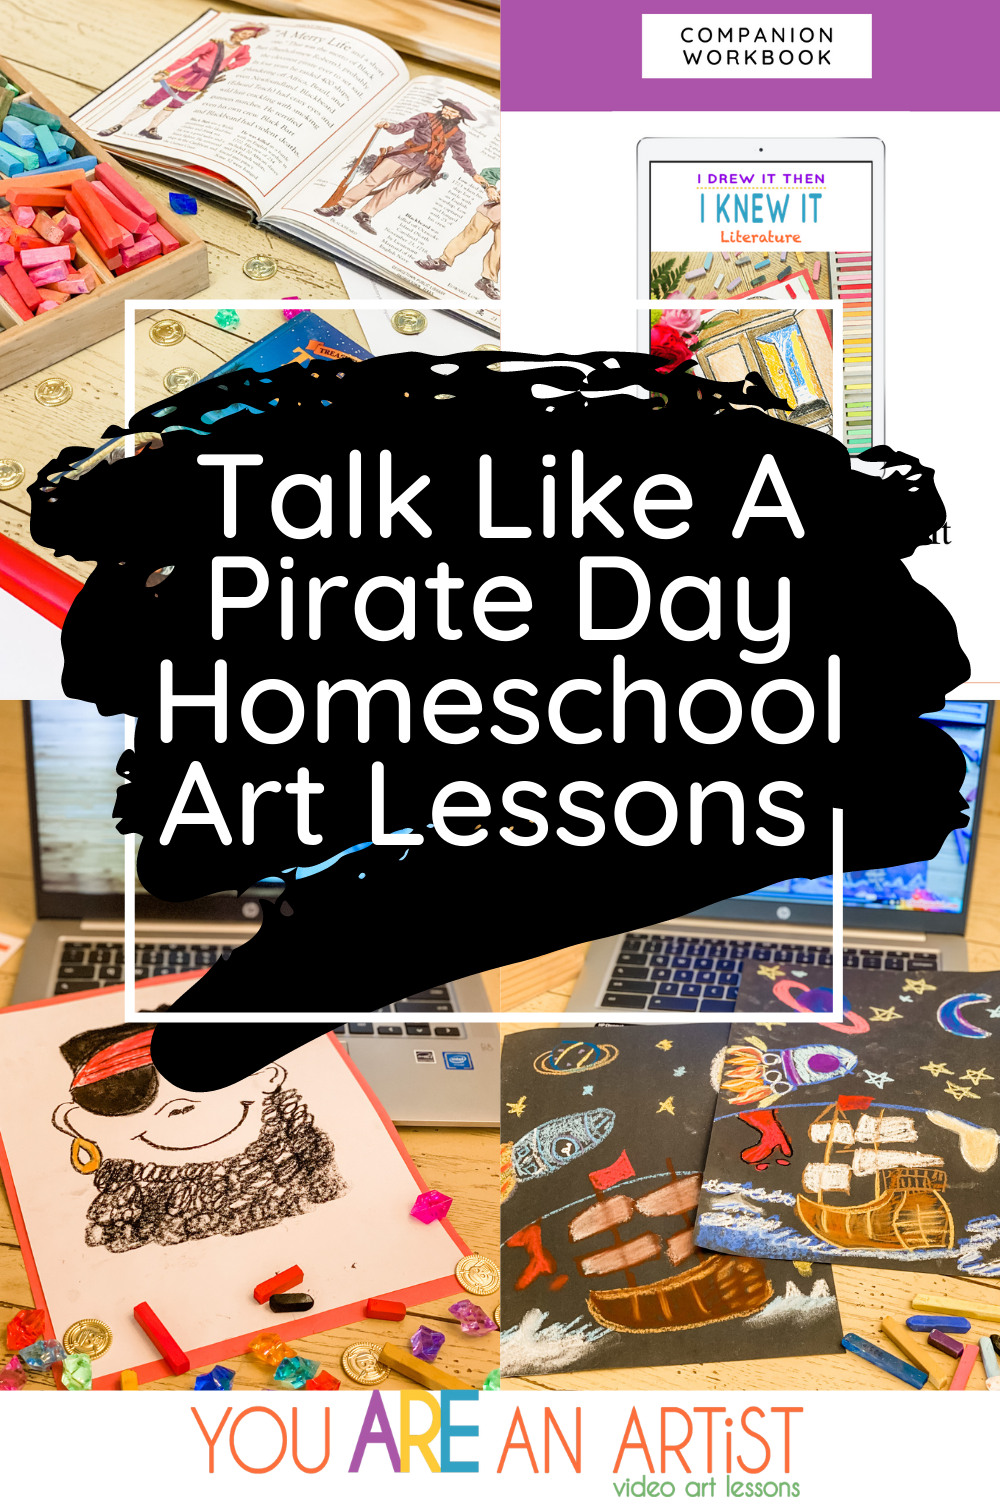 Talk Like A Pirate Day Homeschool Art Lessons To Help You Celebrate! Art lessons, books, movies, and educational ideas to make a memorable homeschool day! #homeschoolart #talklikeapirateday #pirateart